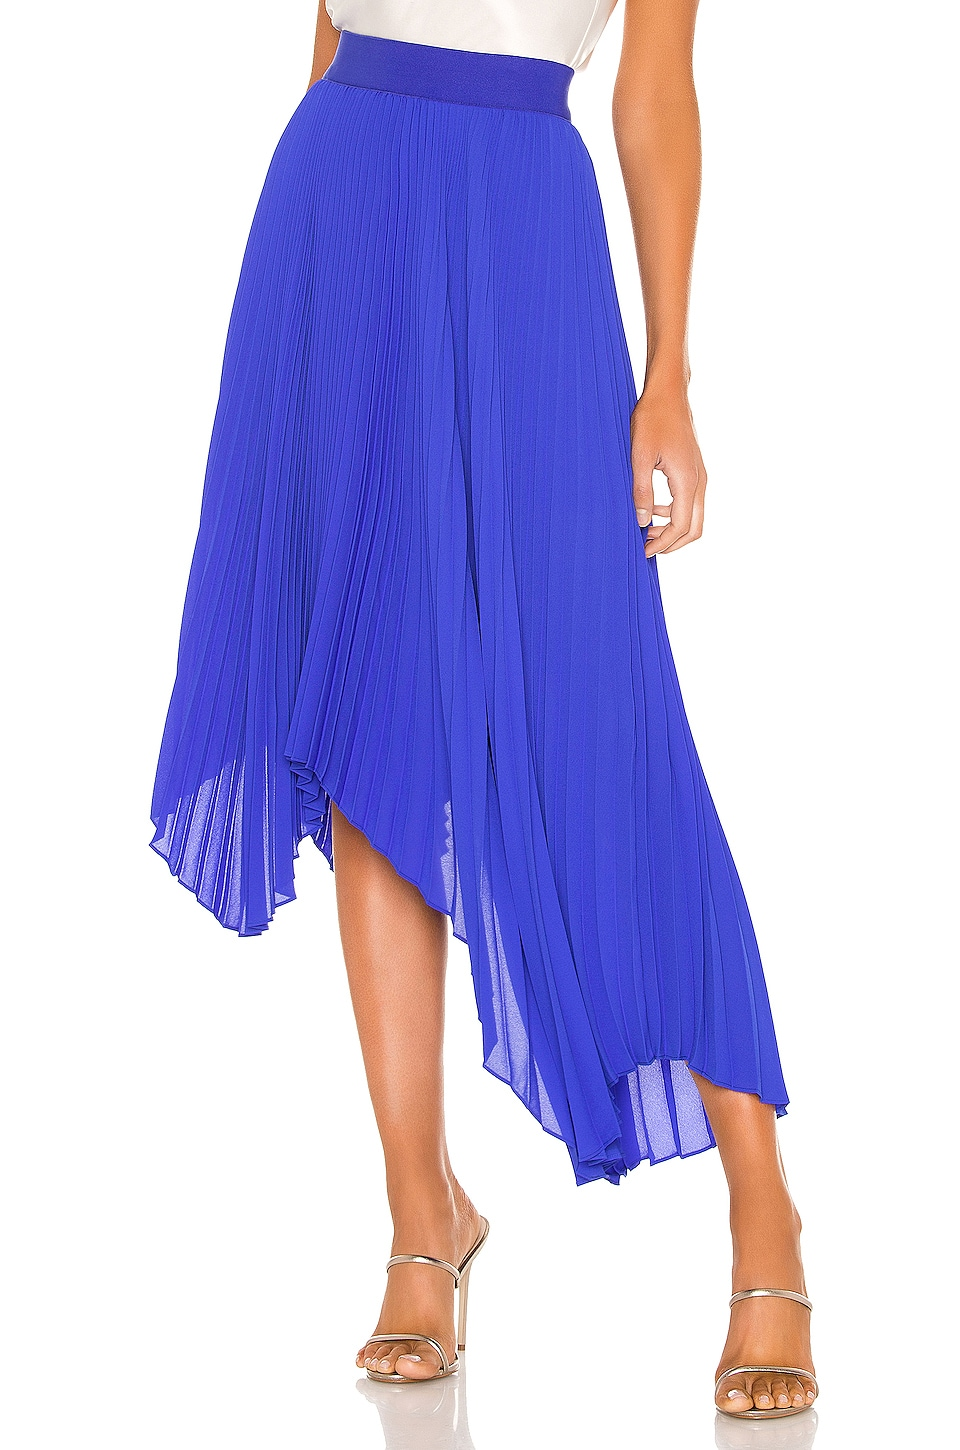 Alice + Olivia Koryn Asymmetrical Pleated Skirt in Ultramarine